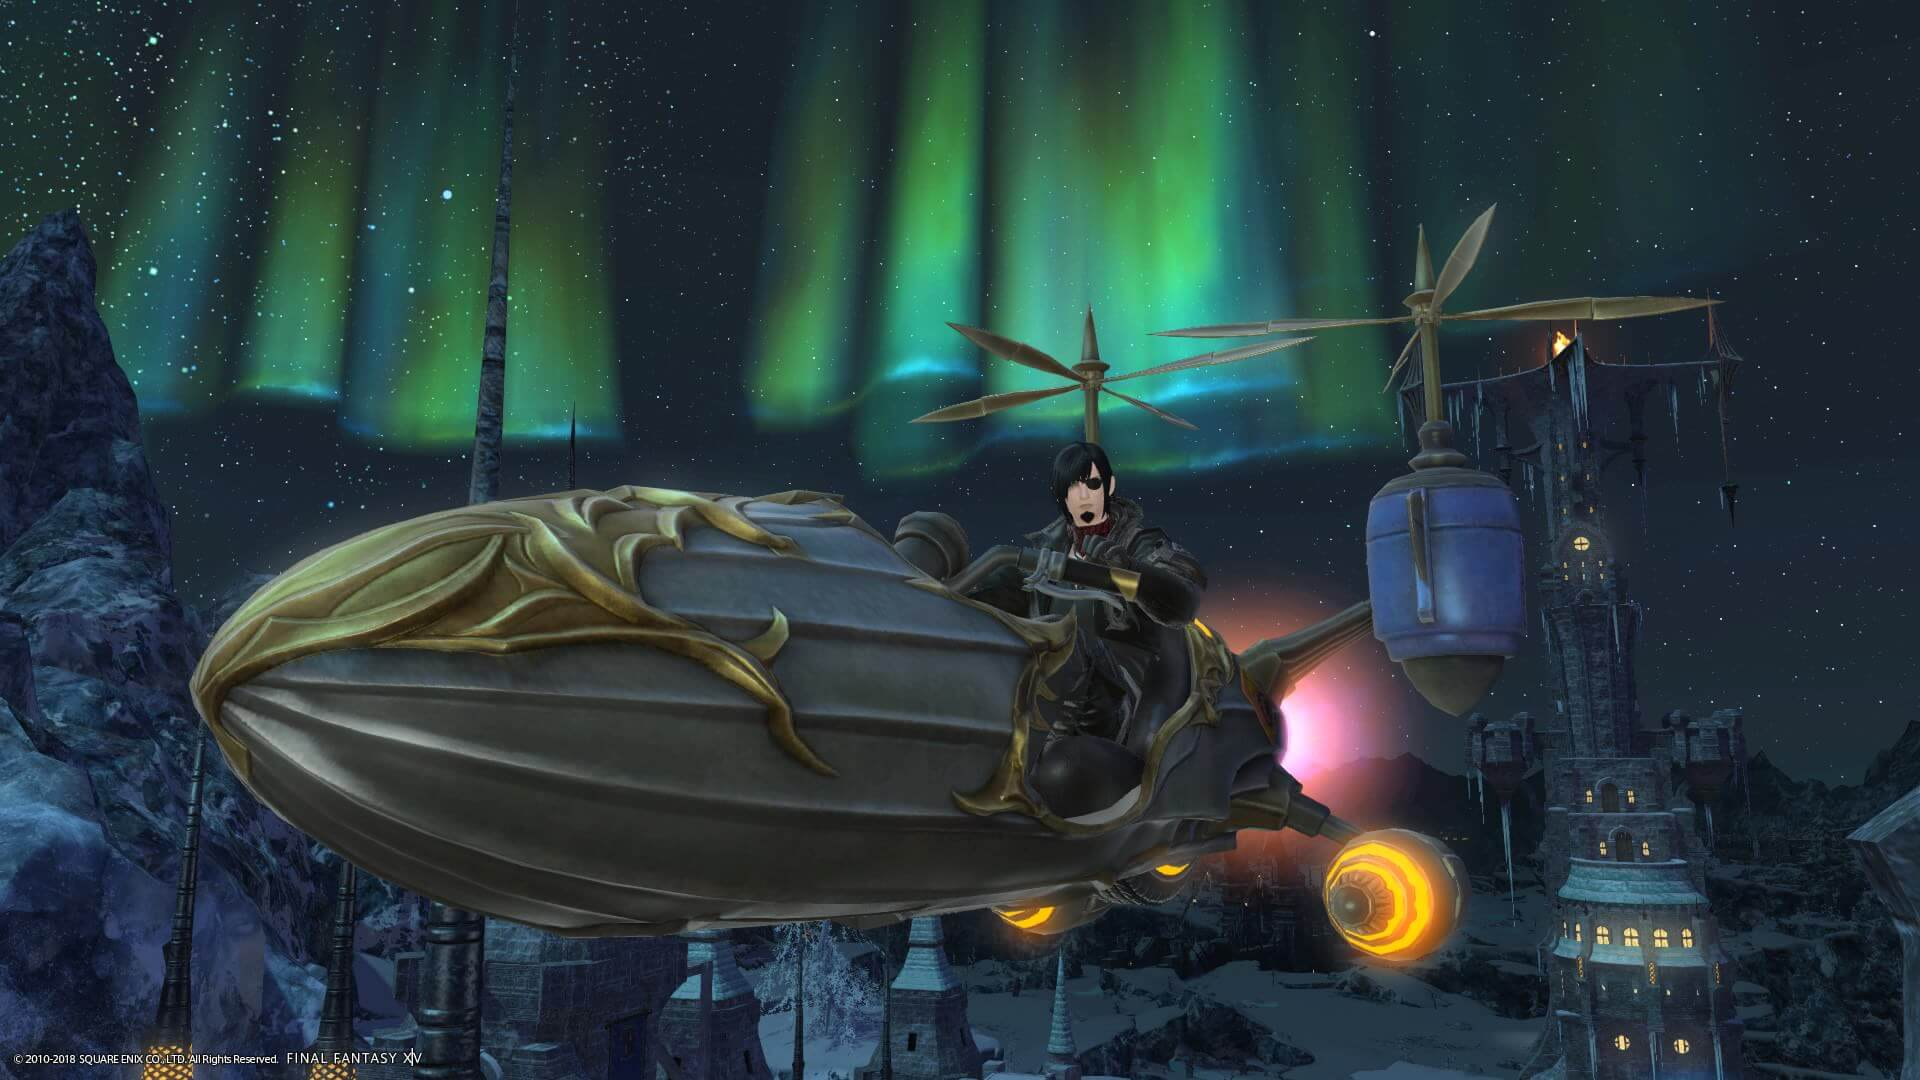 FFXIV: Shadowbringers Guide - How to Get the Falcon Mount